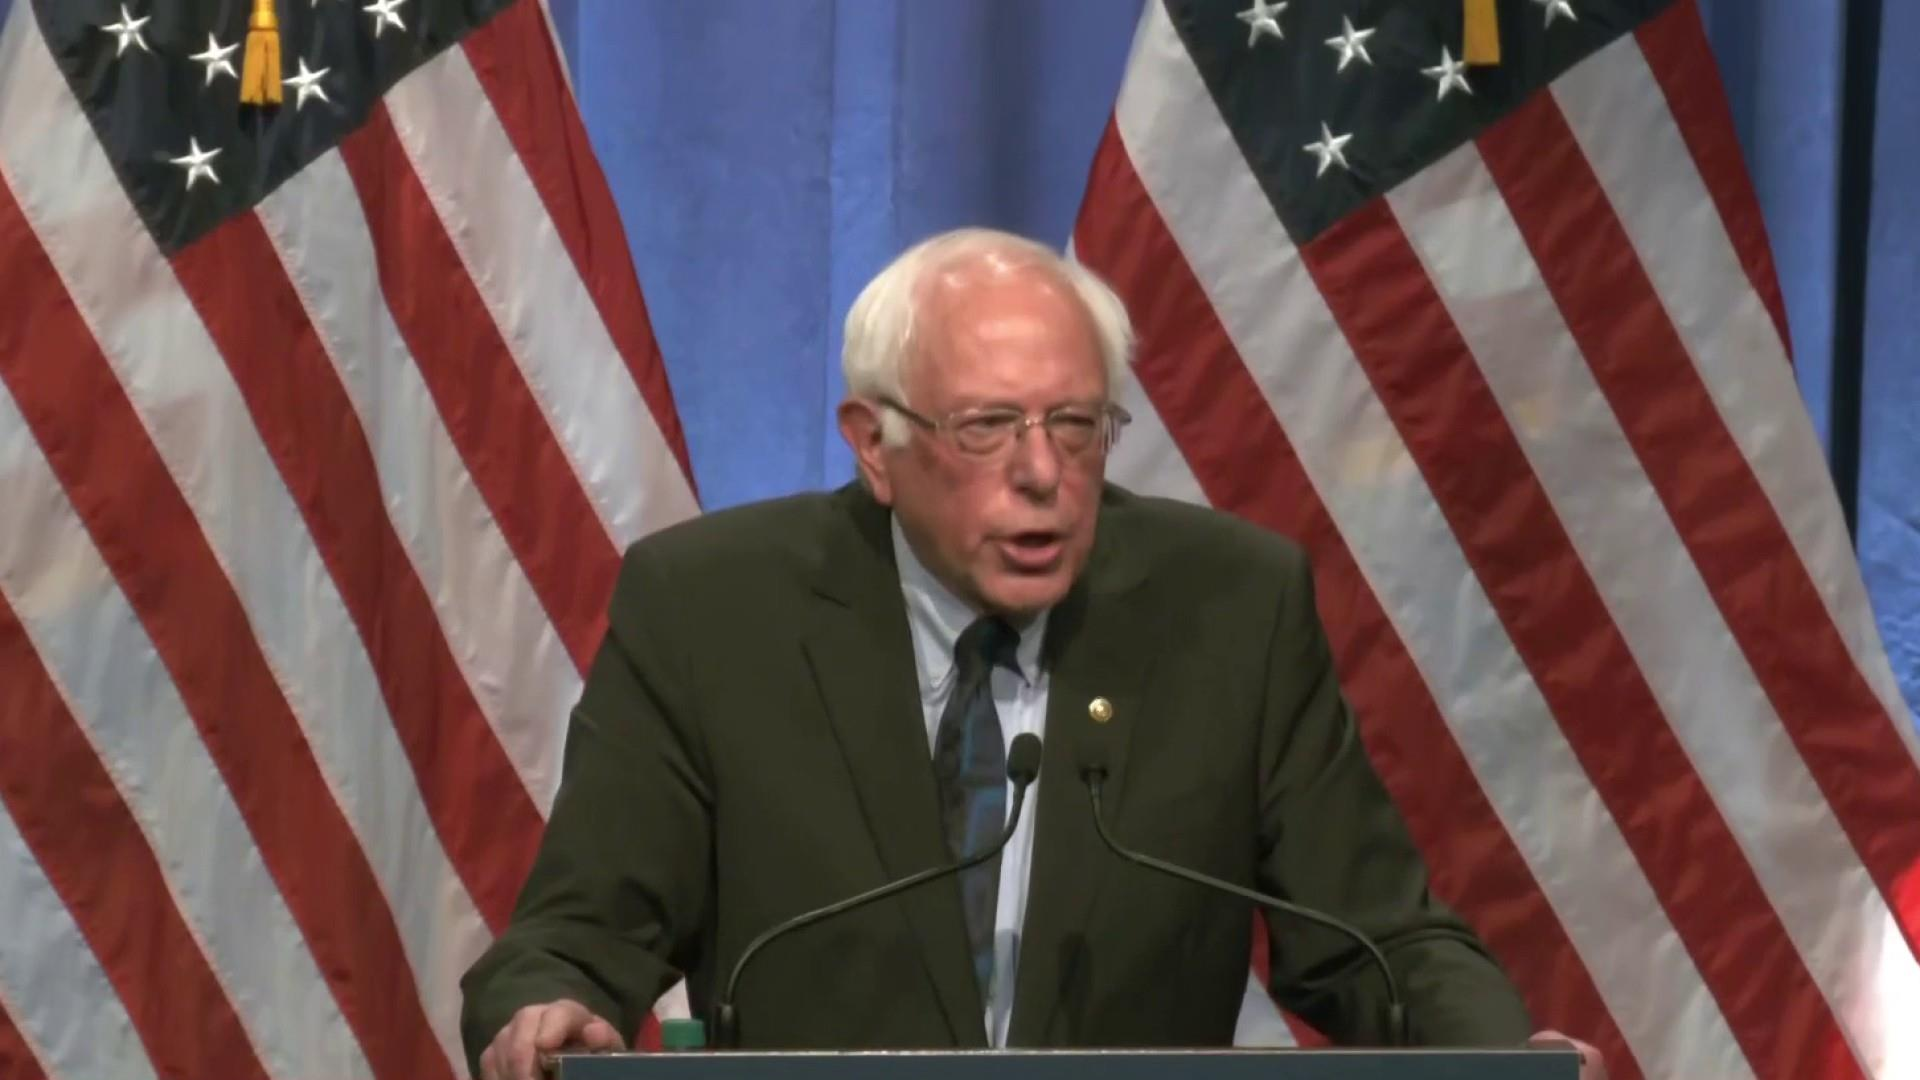 Sanders goes 'full FDR' touting 'hatred' from bankers